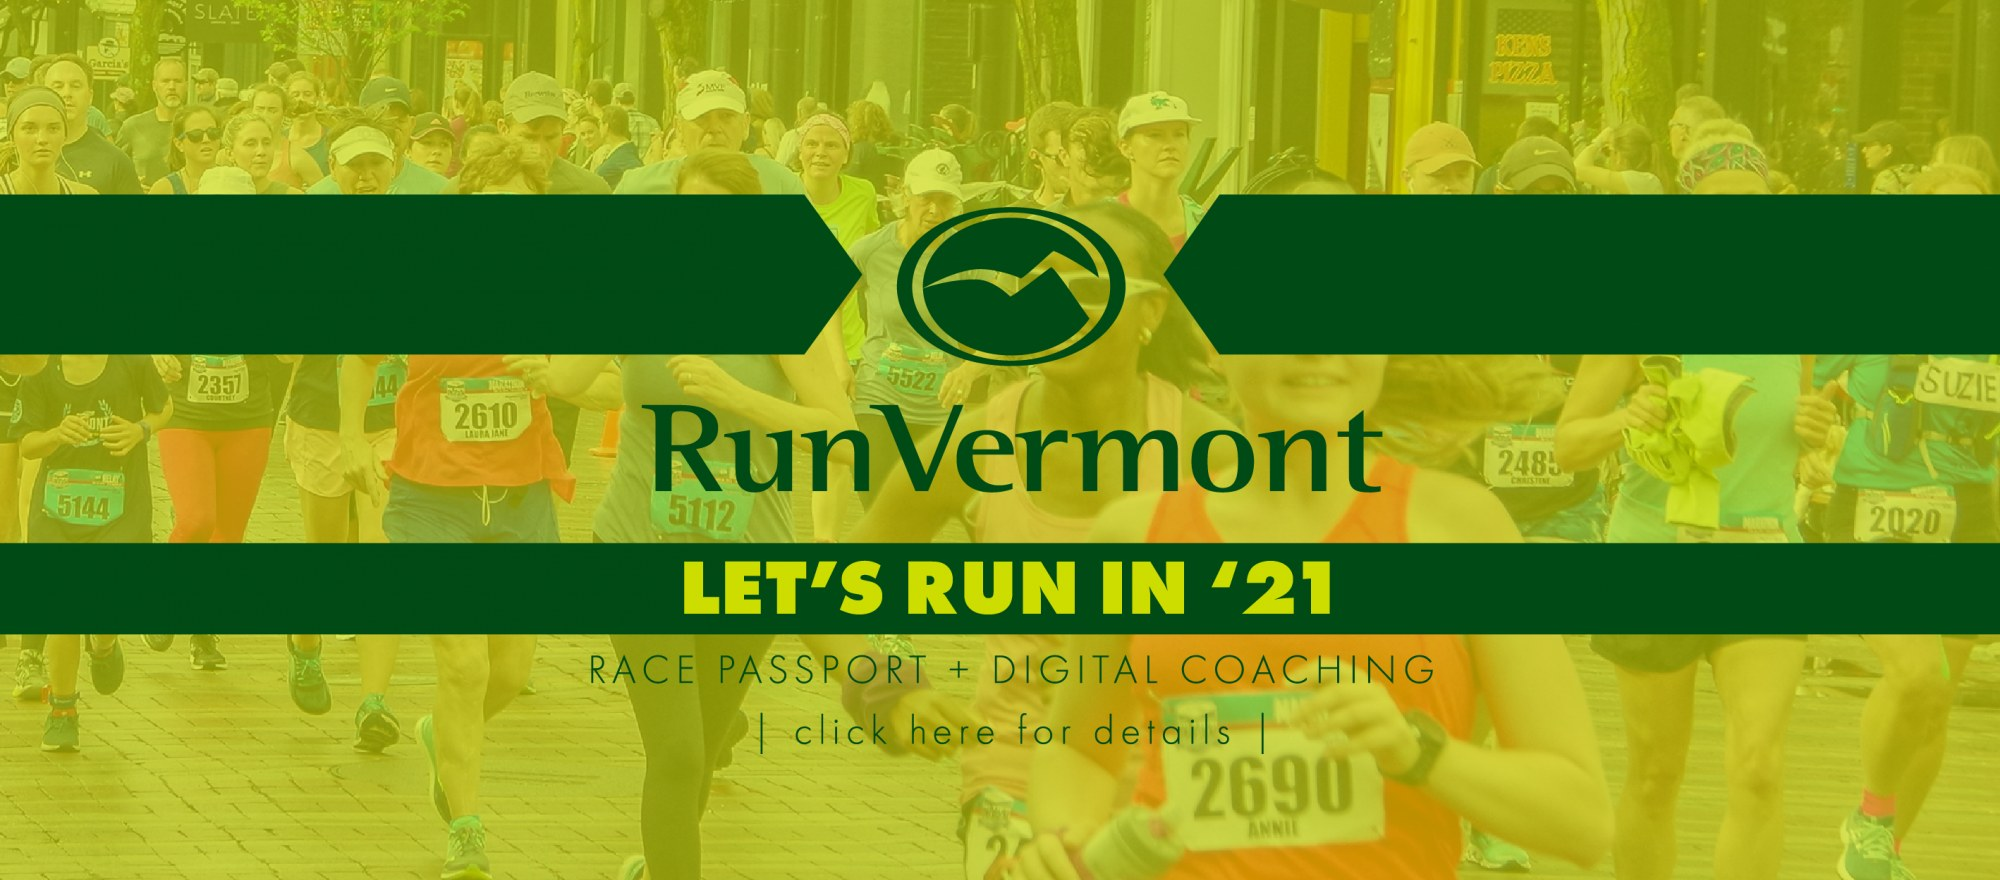 LET'S RUN IN '21 HEADER IMAGE WITH GREEN WRITING AND RUNNERS IN THE BACKGROUND